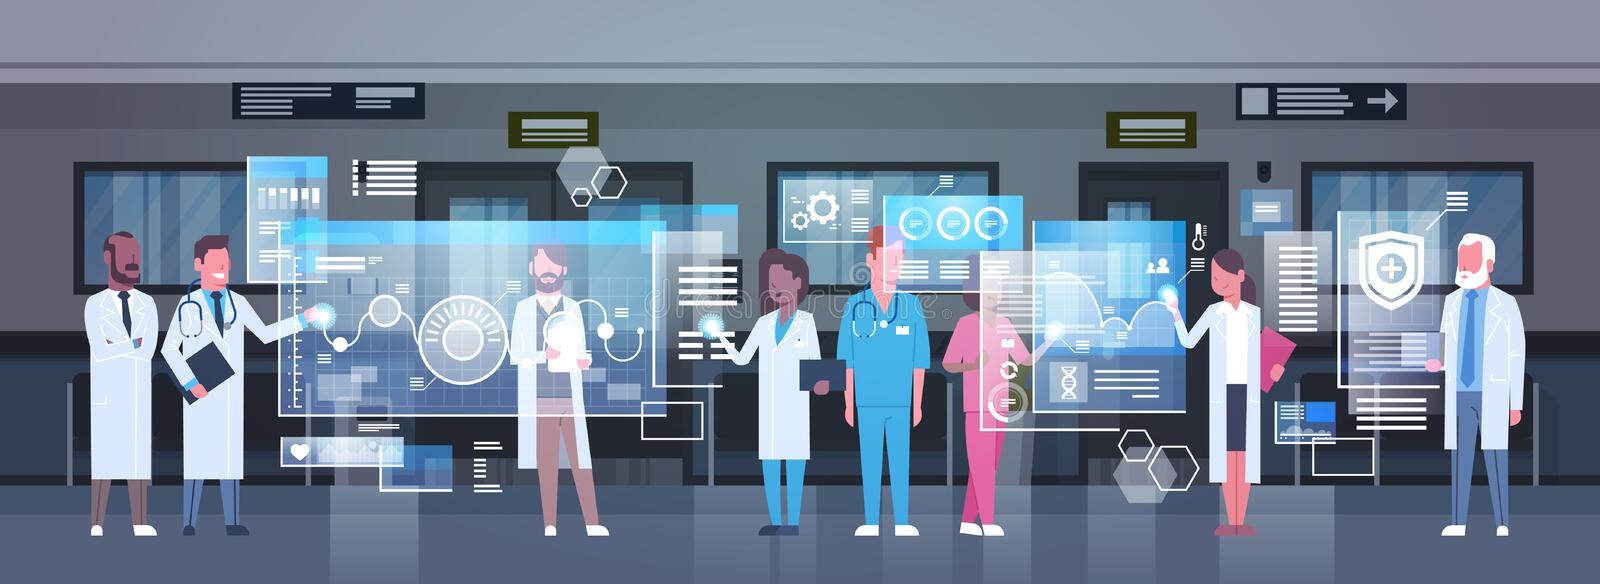 Group Of Medical Doctors Using Digital Monitor Working In Hospital Medicine And Modern Technology Concept. Flat Vector Illustration